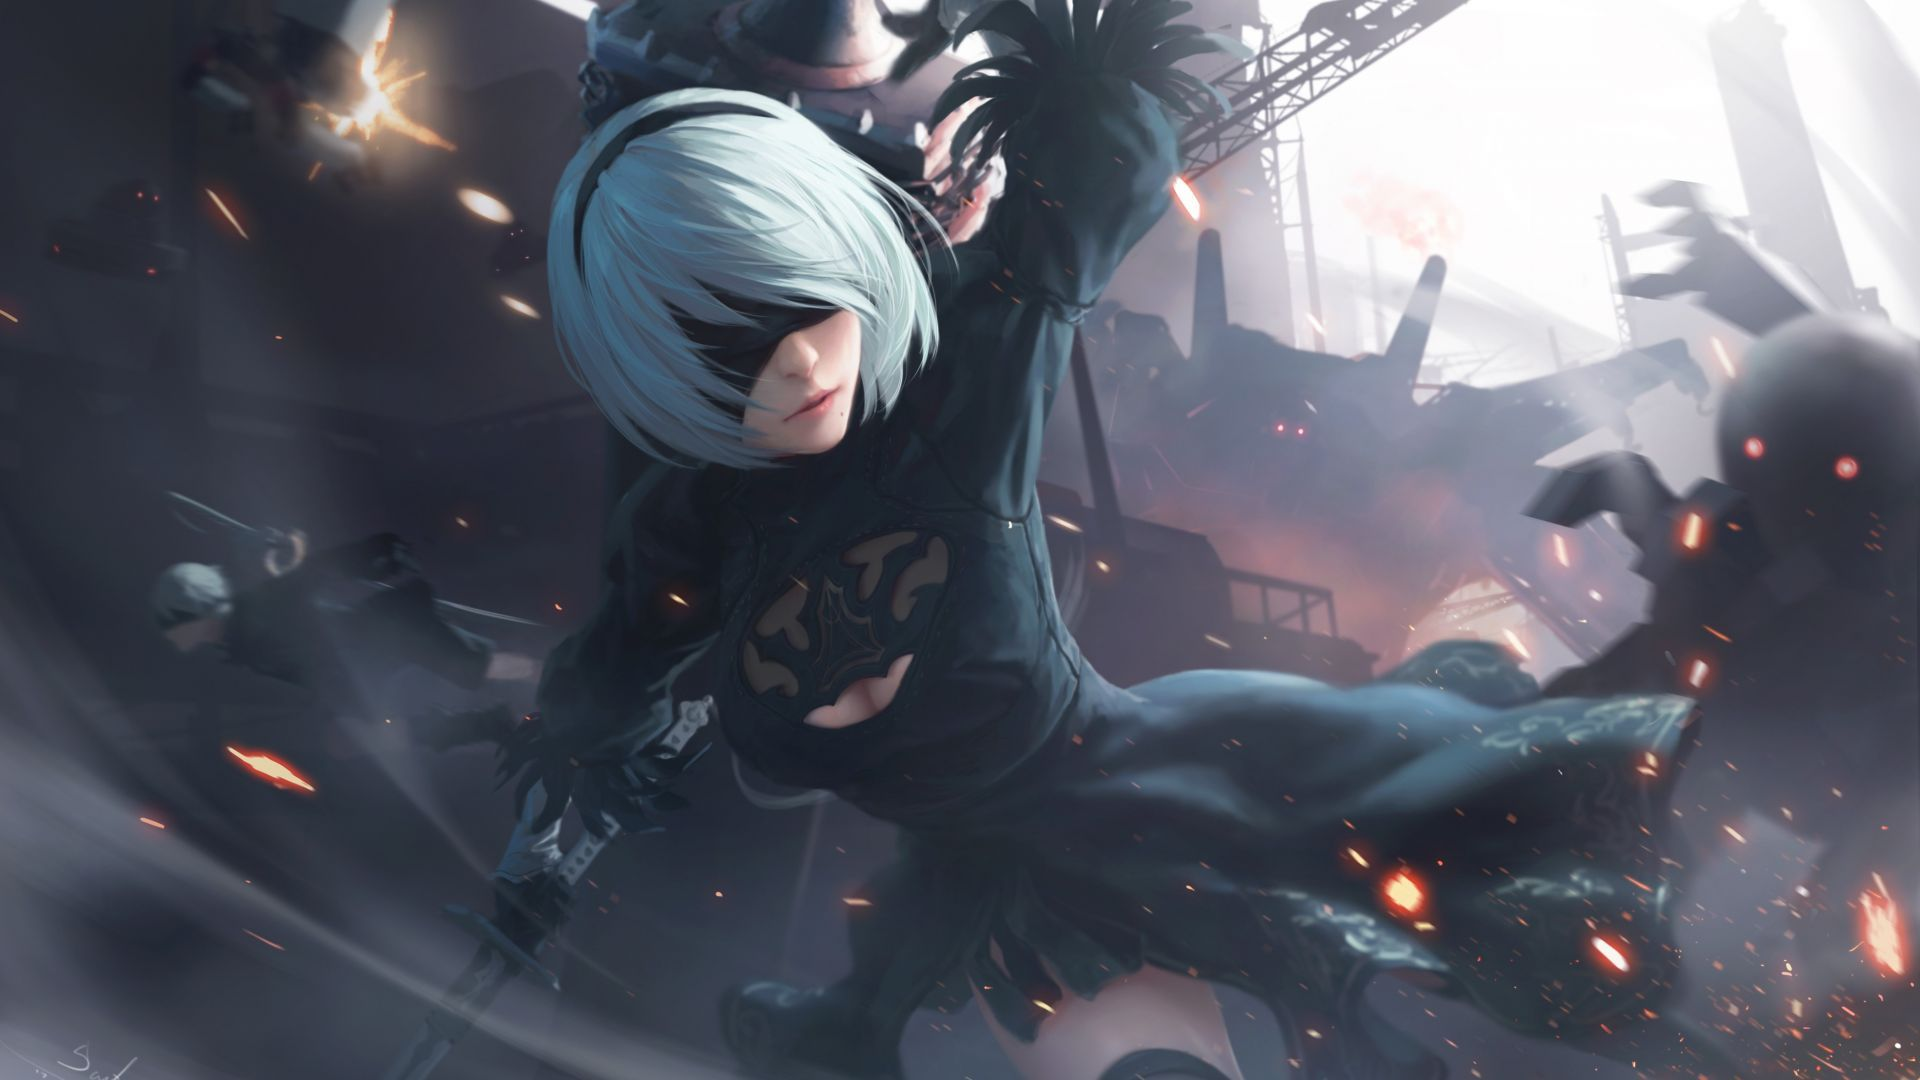 Download Wallpapers Of Nier Automata Artwork 4k Creative Graphics 11940 Available In Hd 4k Resolutions For Desktop Nier Automata Automata Anime Canvas